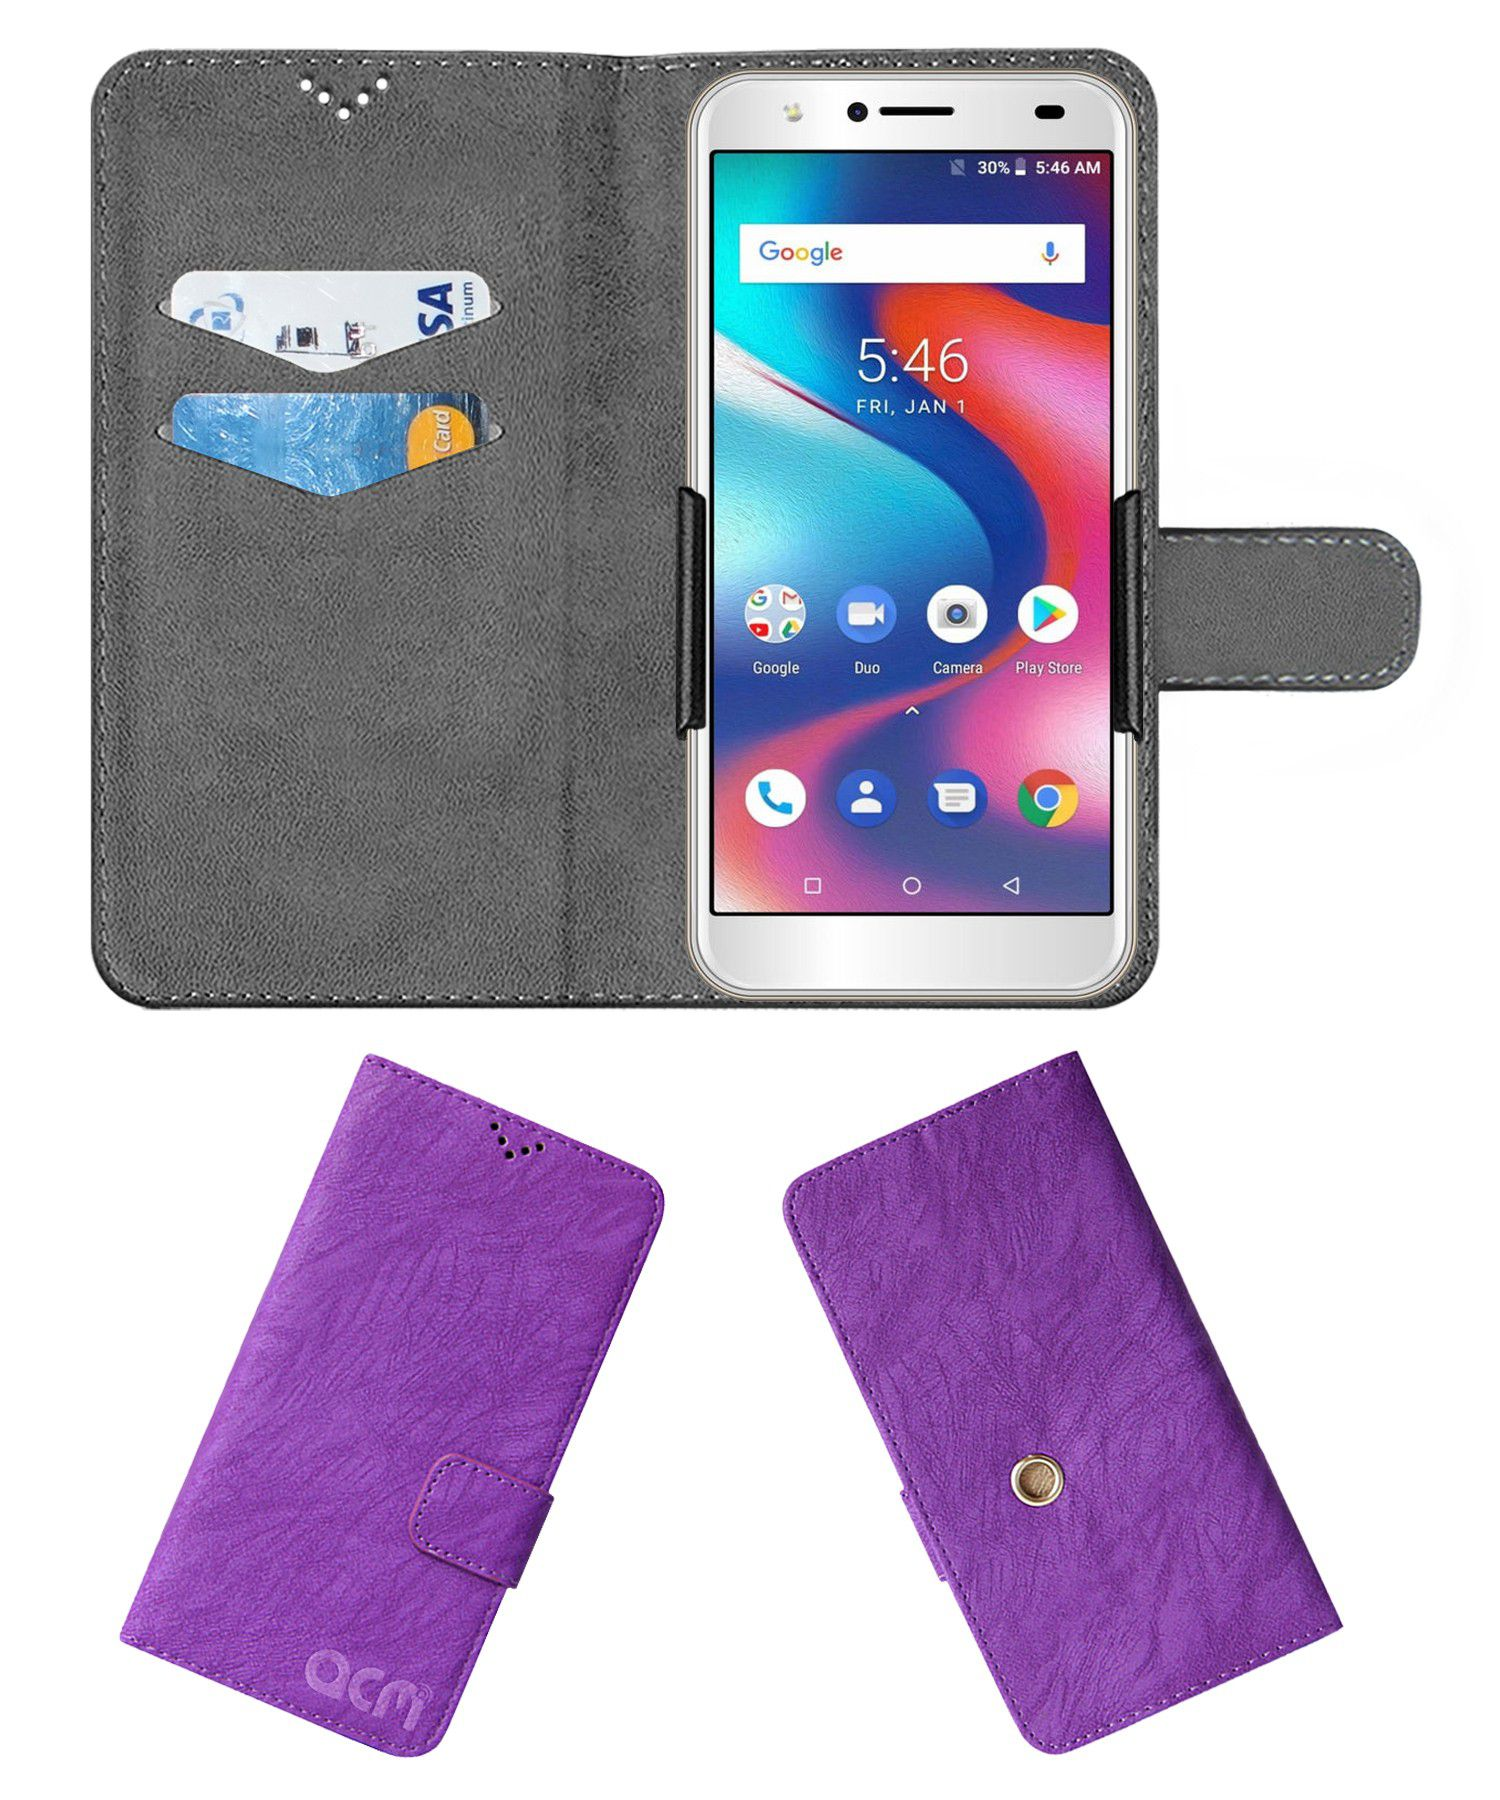 Yuho O2 Pro Flip Cover by ACM - Purple Clip holder to hold your mobile securely